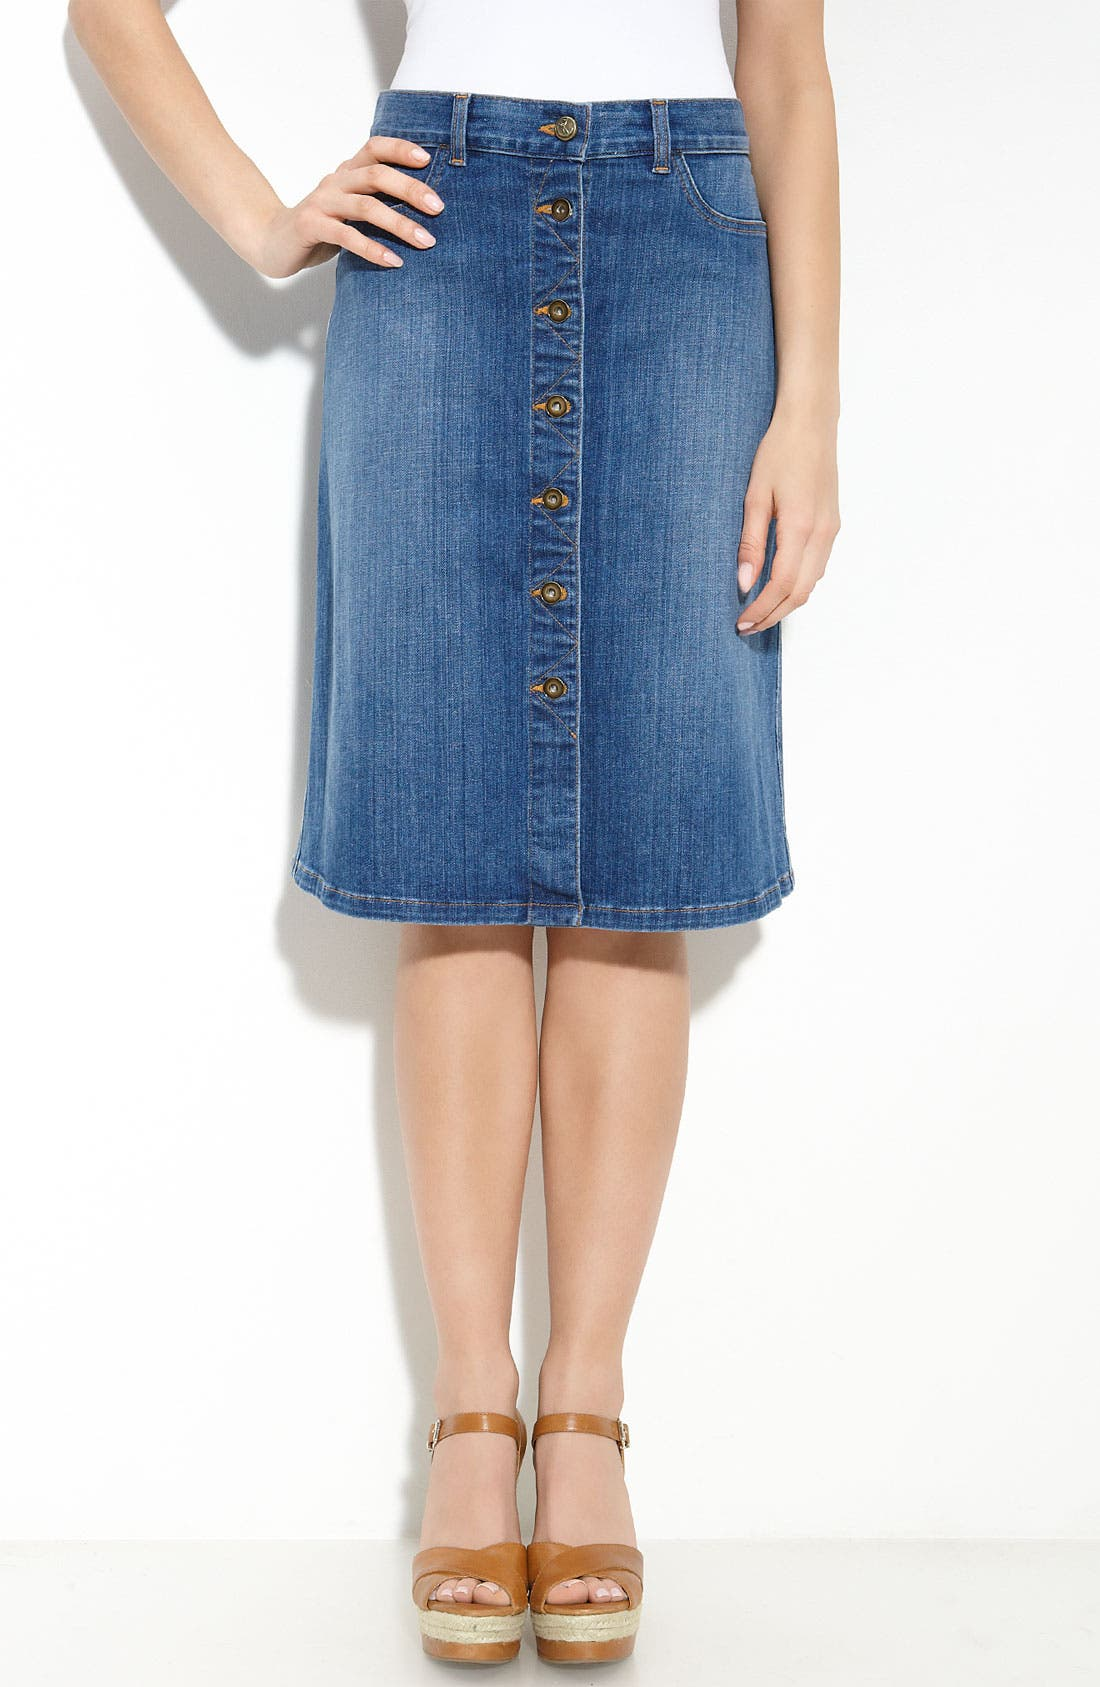 Main Image - CJ by Cookie Johnson 'Unity' Skirt (New Vintage Blue Wash)